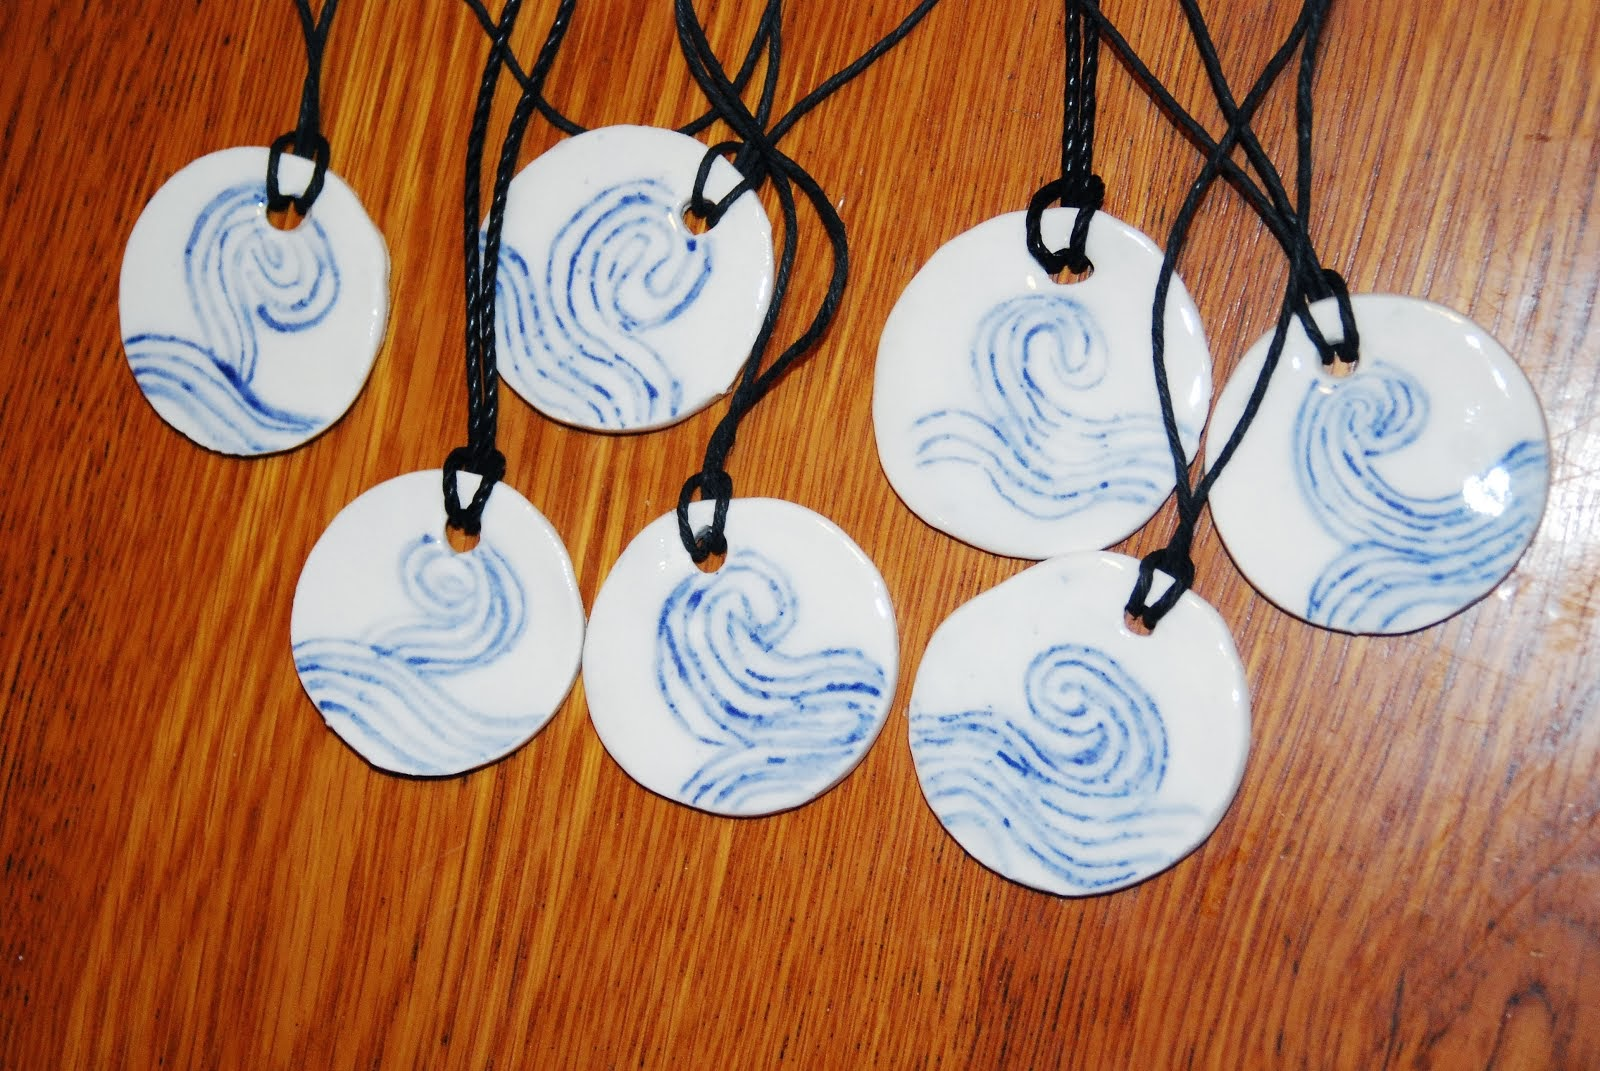 Win a Spiral Pendant on the Happy Holidays Book Blog Hop during Dec. 1-15th